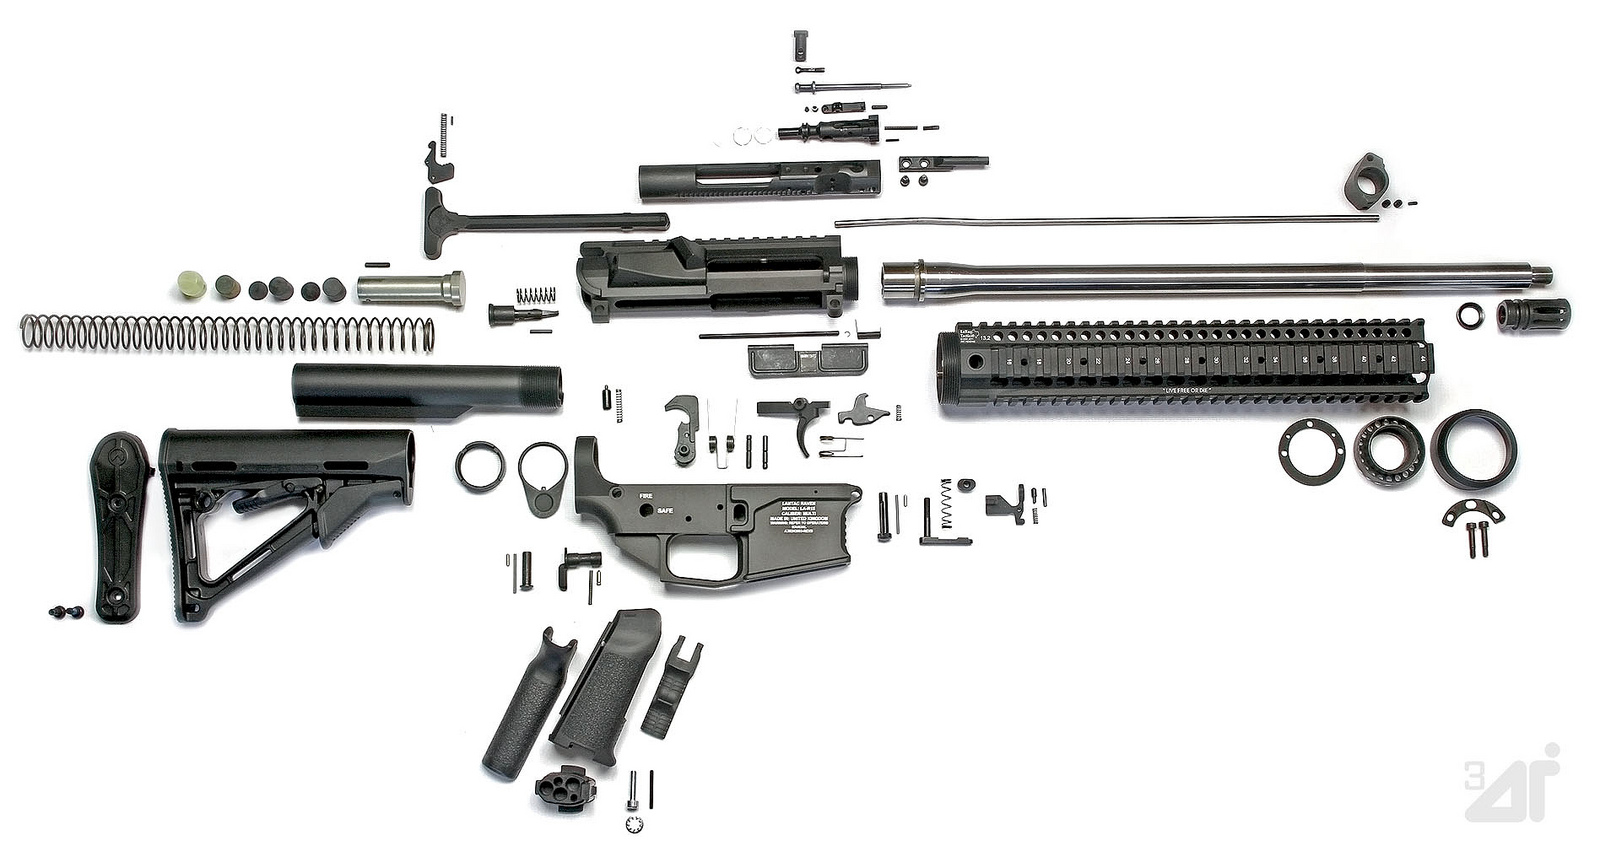 Peninsula Guns and Tactical - Overview AR-15 Rifle Build Guide